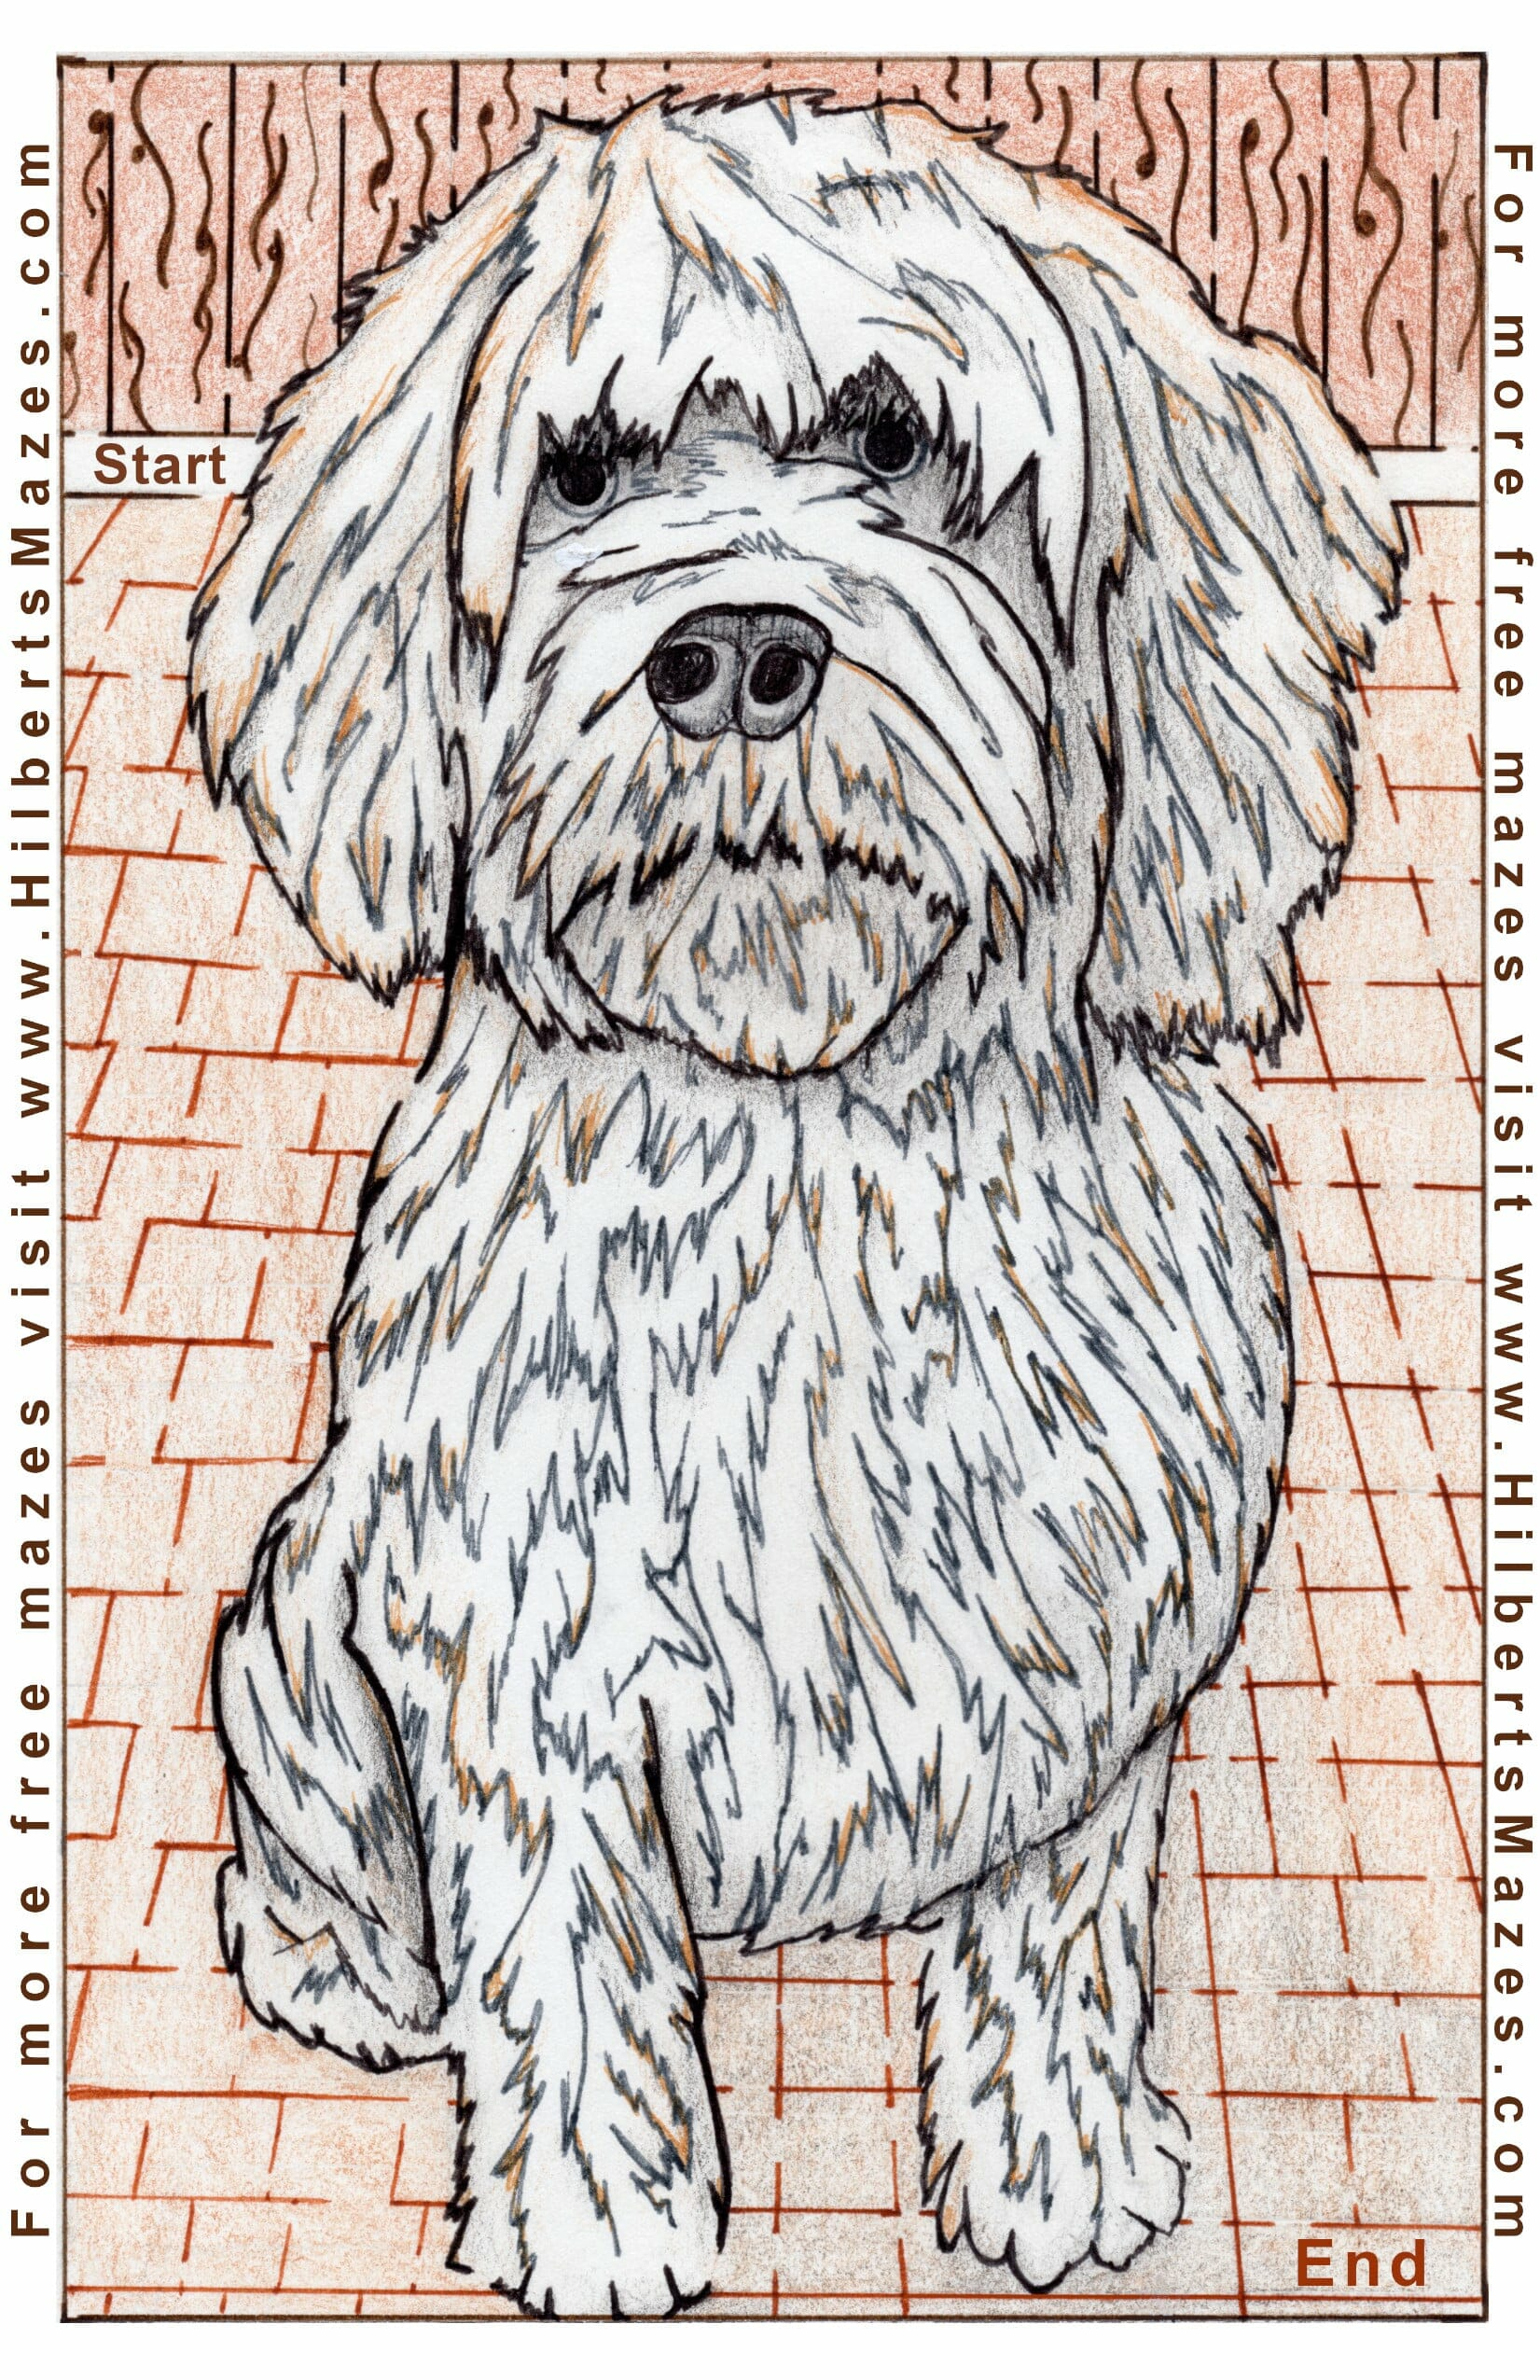 Free Printable Hand Drawn Dog Maze and Word Puzzle. Easily downloadable free printable PDF format. Great Mazes and Games for both kids & adults very challenging but fun.